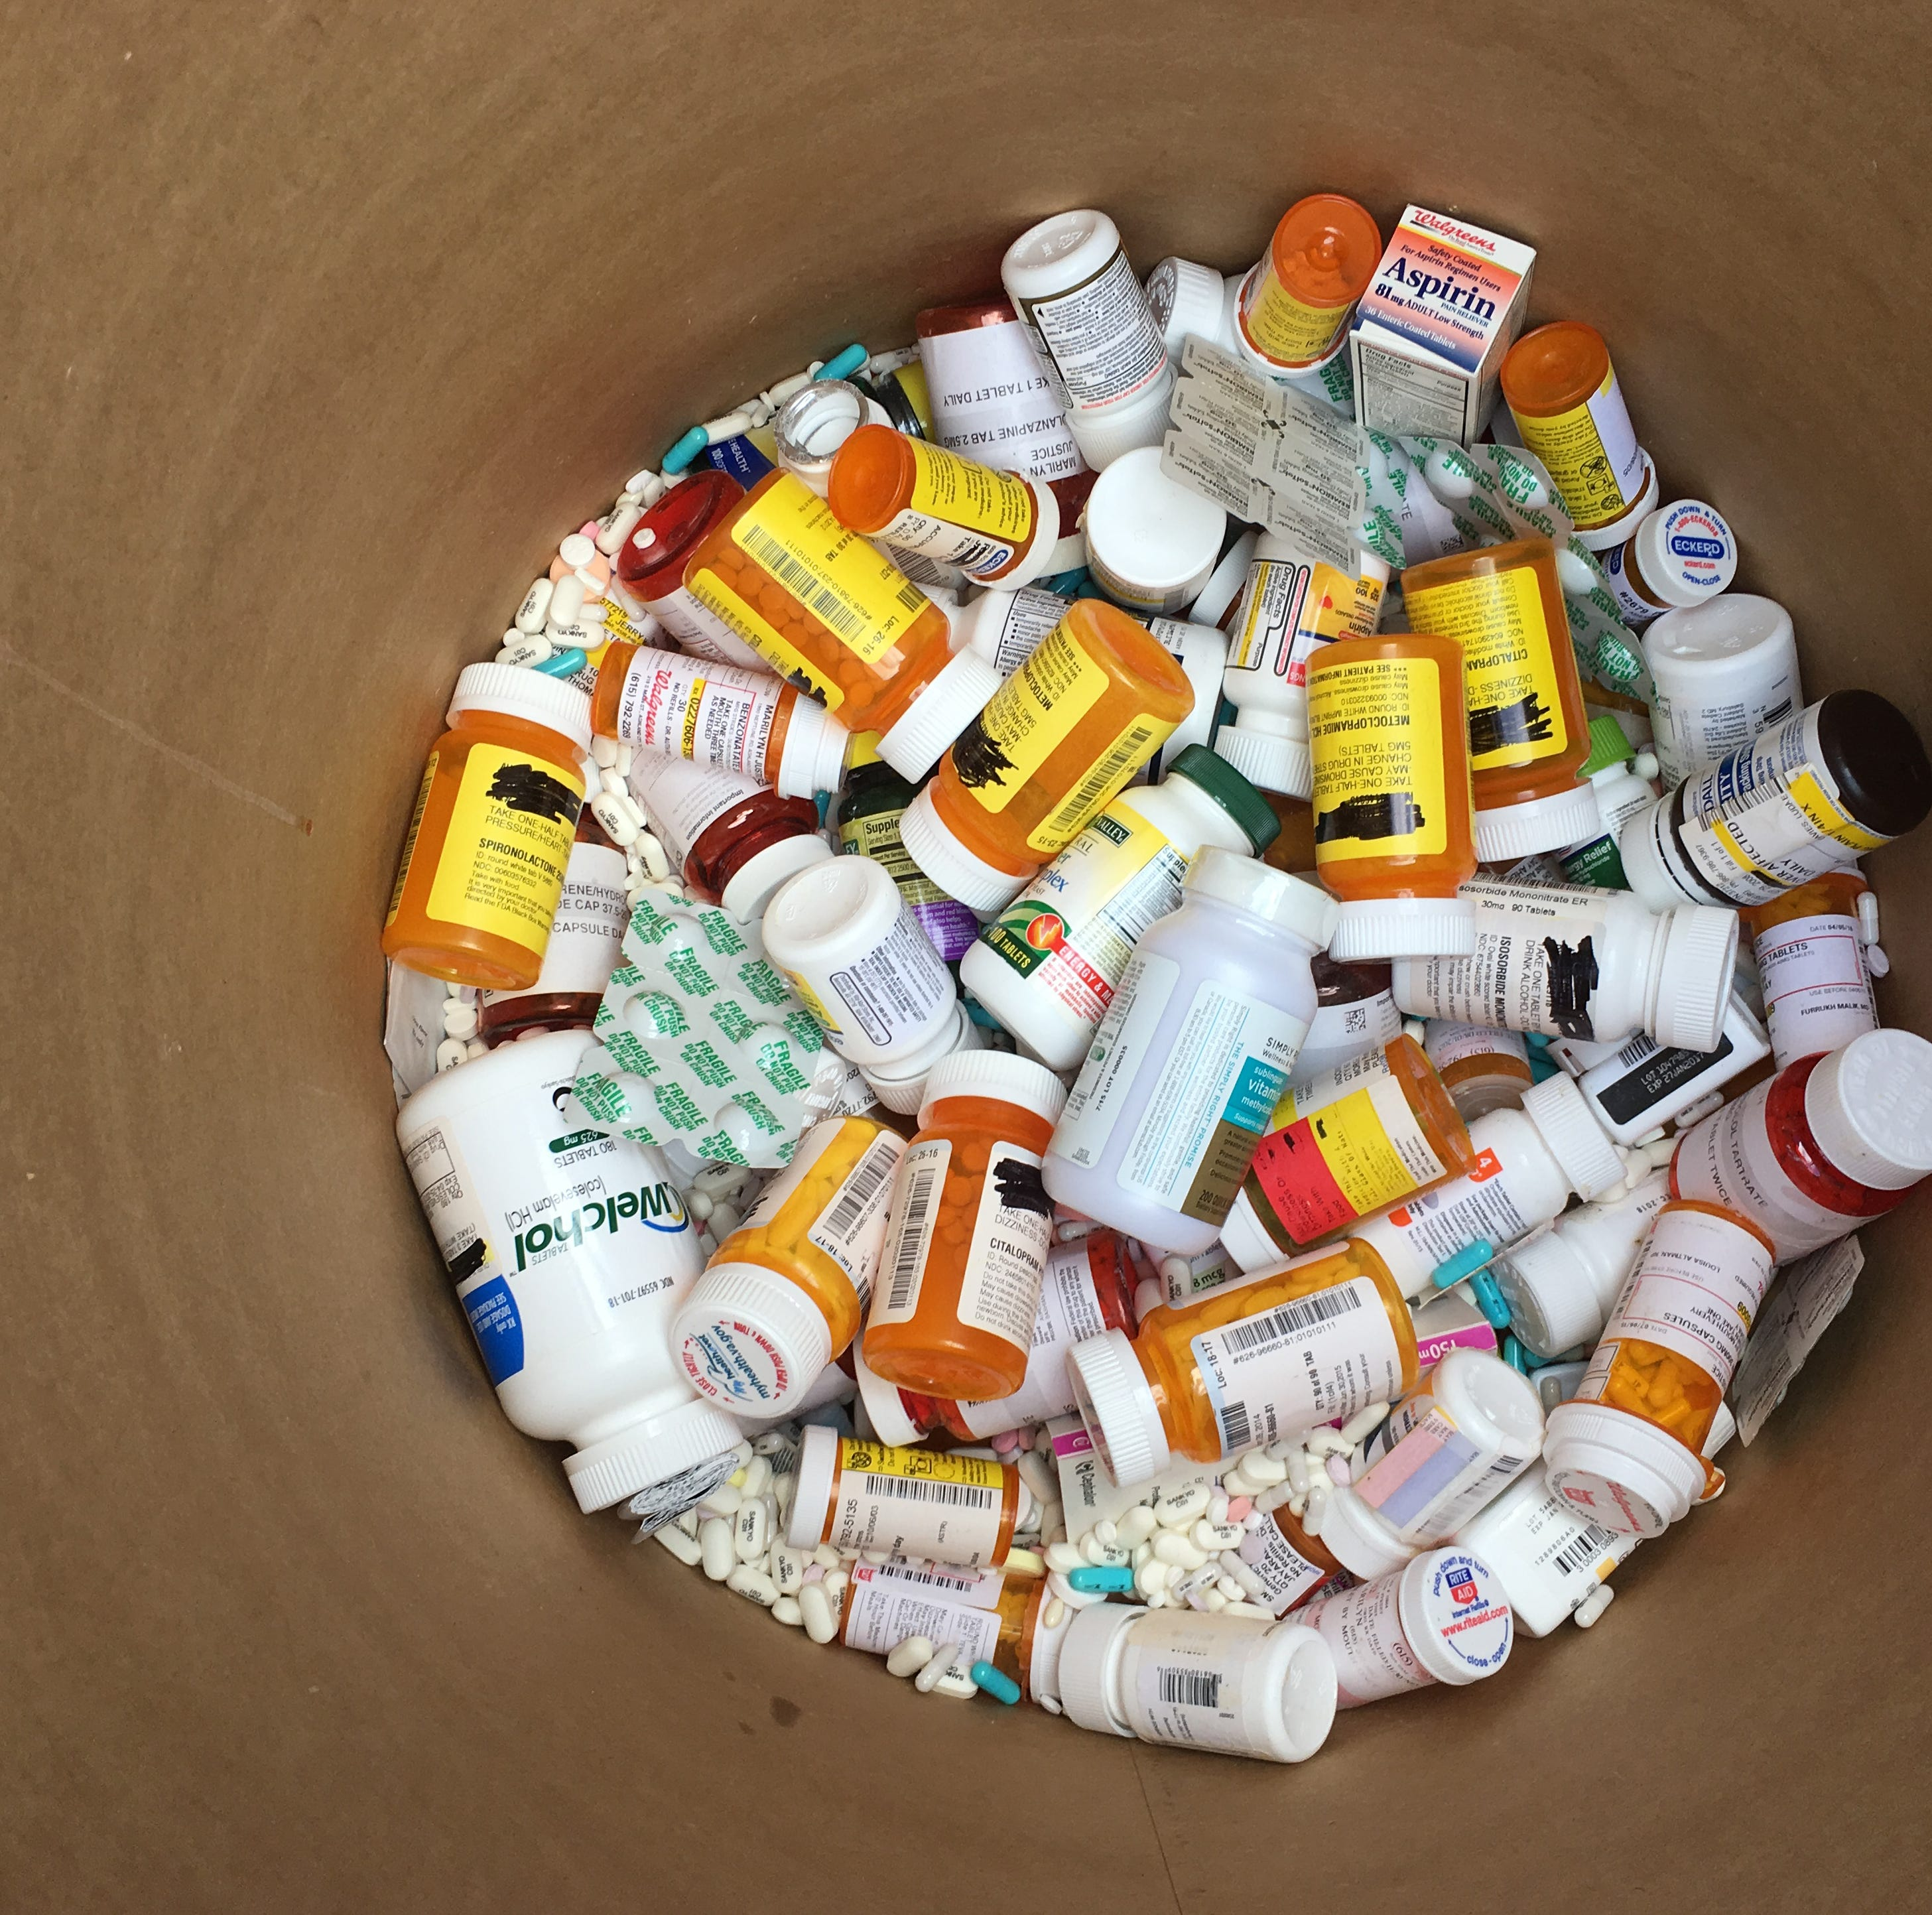 Area drop-off sites for Drug Take Back Day